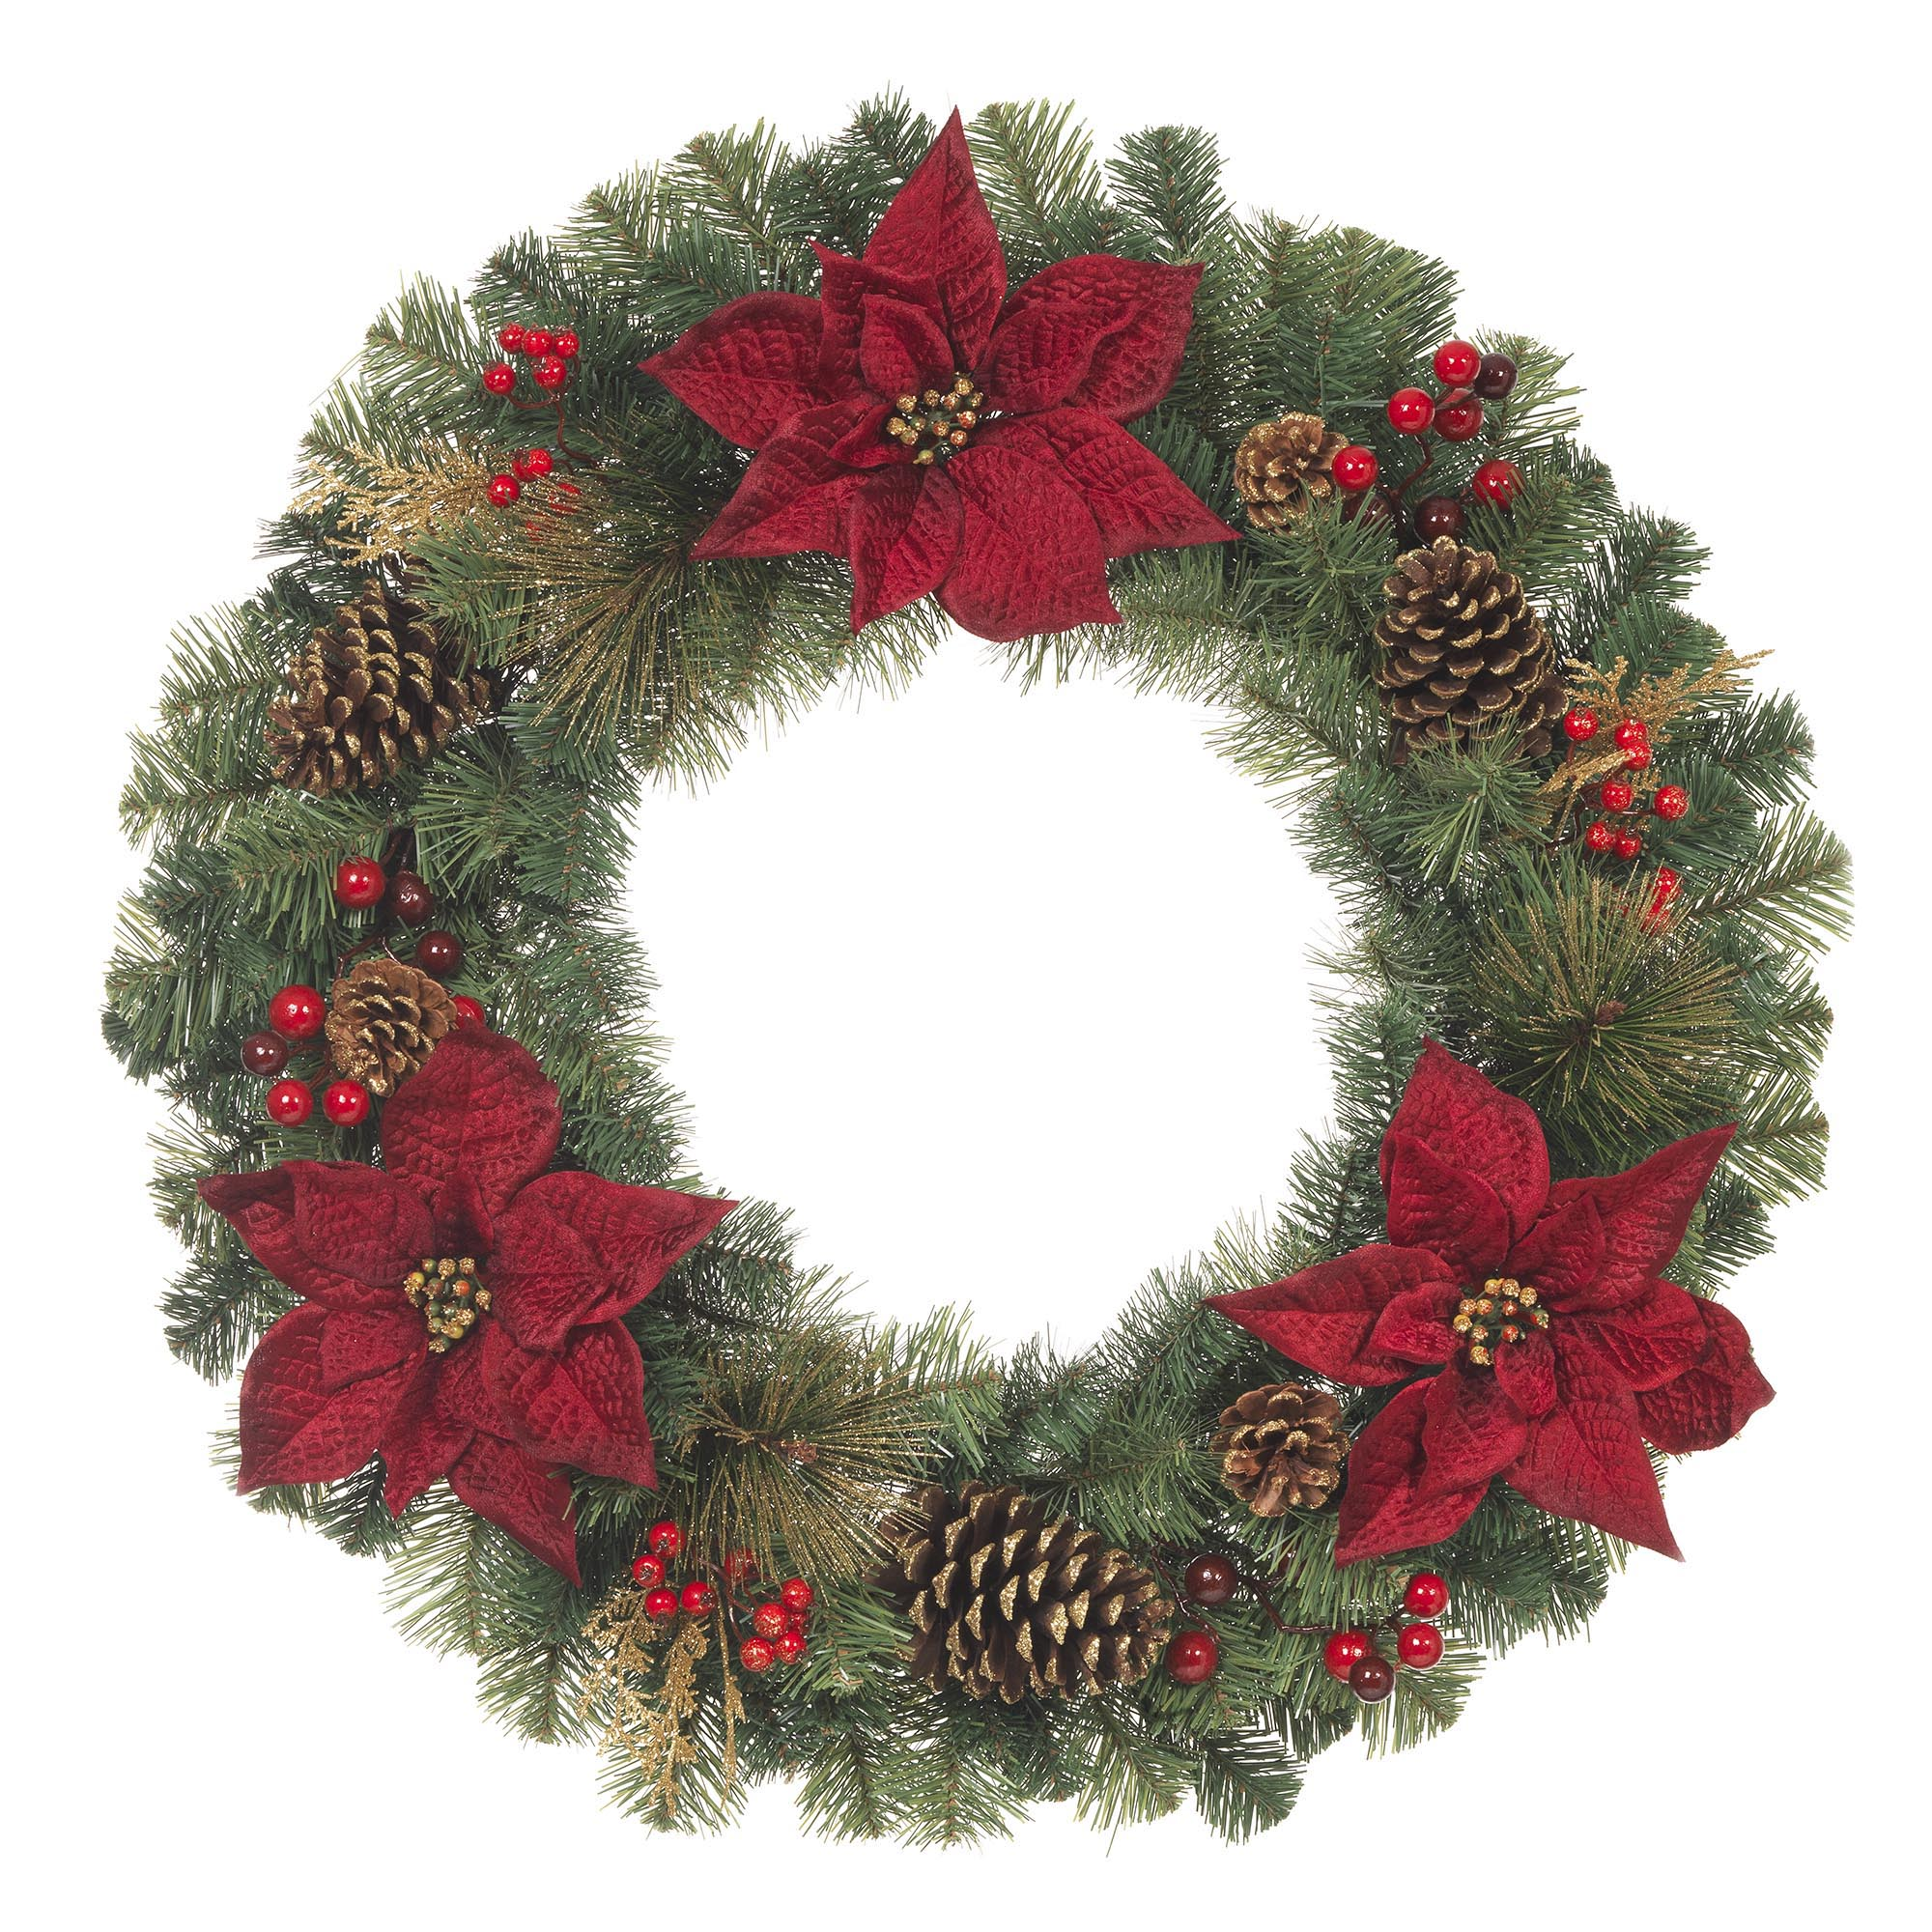 Unlit Artificial Christmas Mixed Pine Wreath with Red Poinsettias